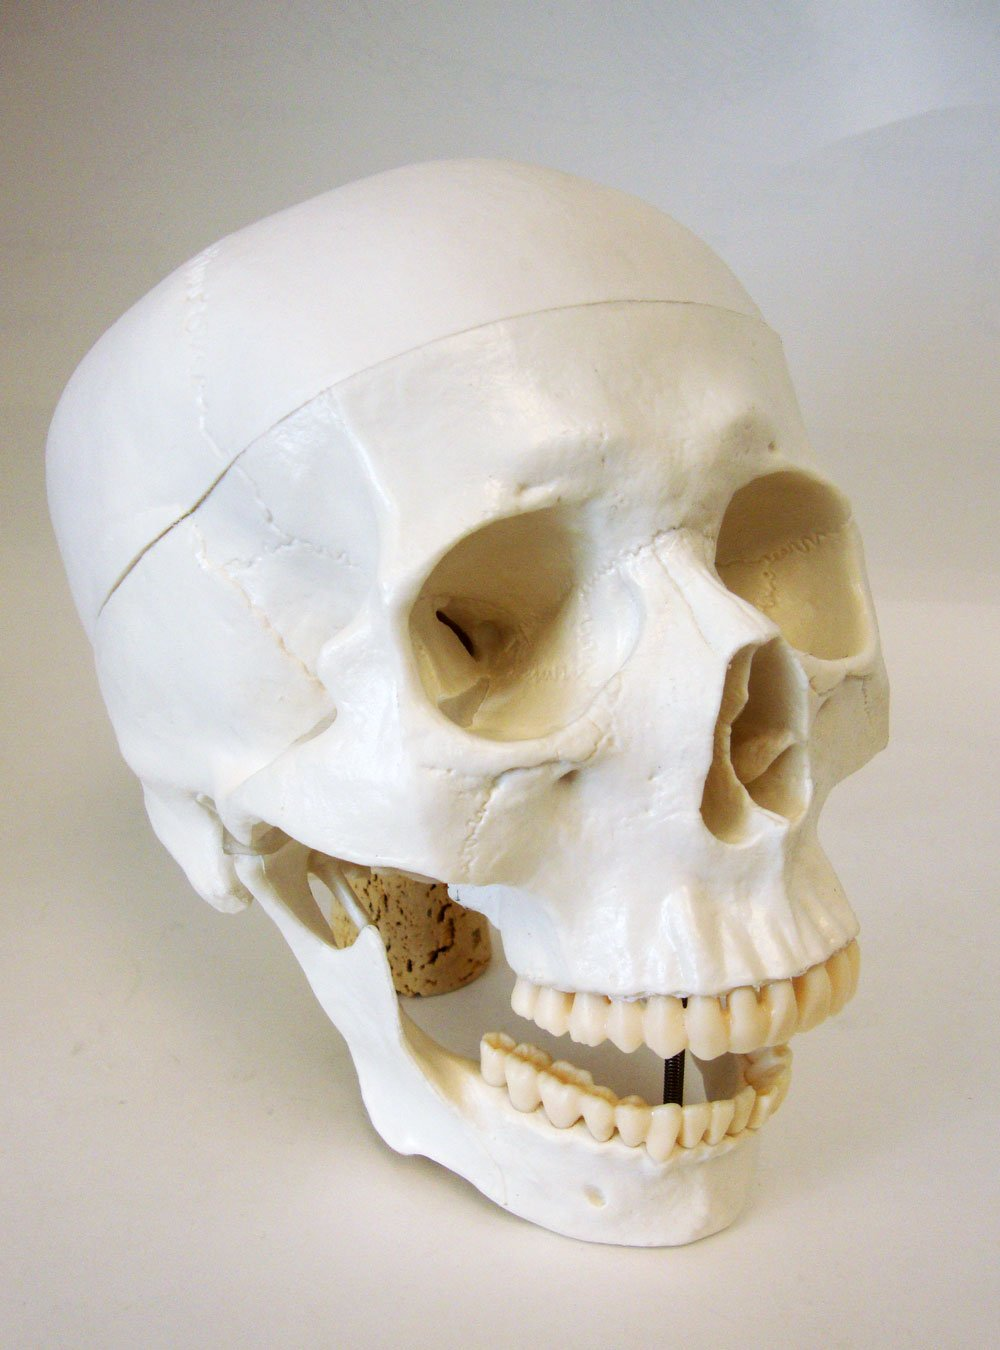 Life Size Model Human Skull Anatomical Model